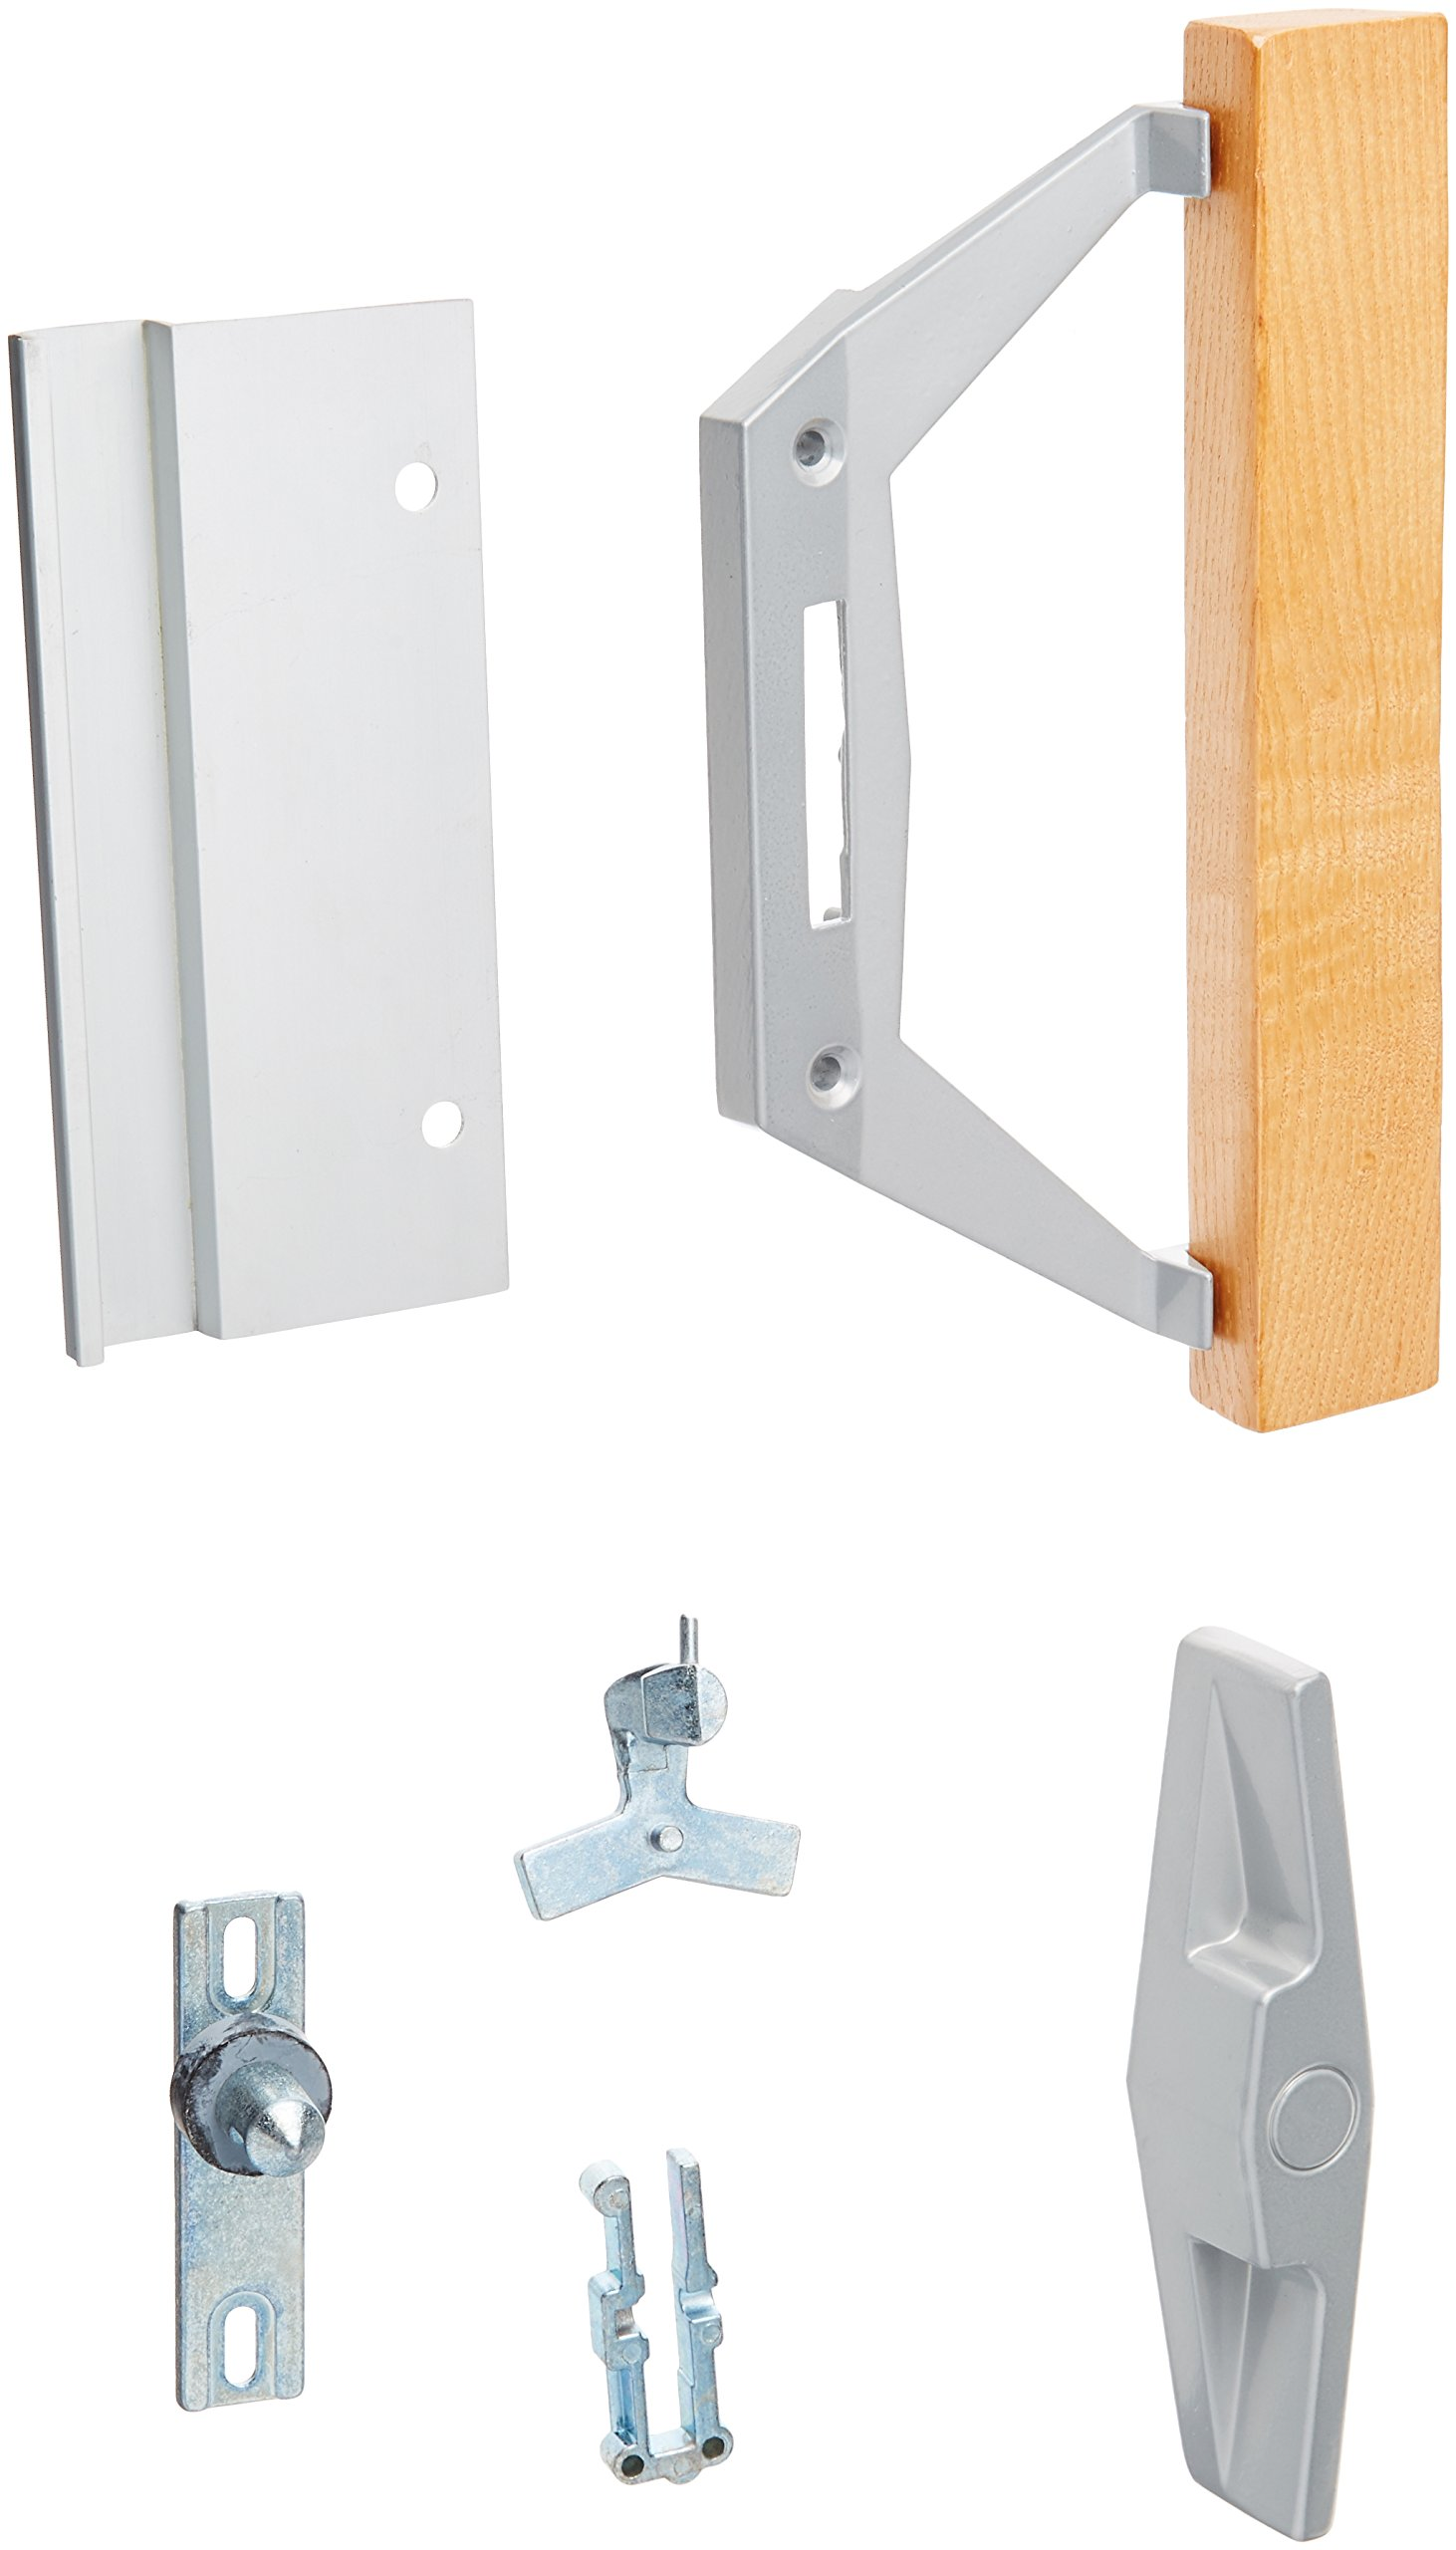 Prime-Line Products C 1186 Patio Door Handle Set with 3-1/2'', Diecast/Wood and Internal Lock, Aluminum